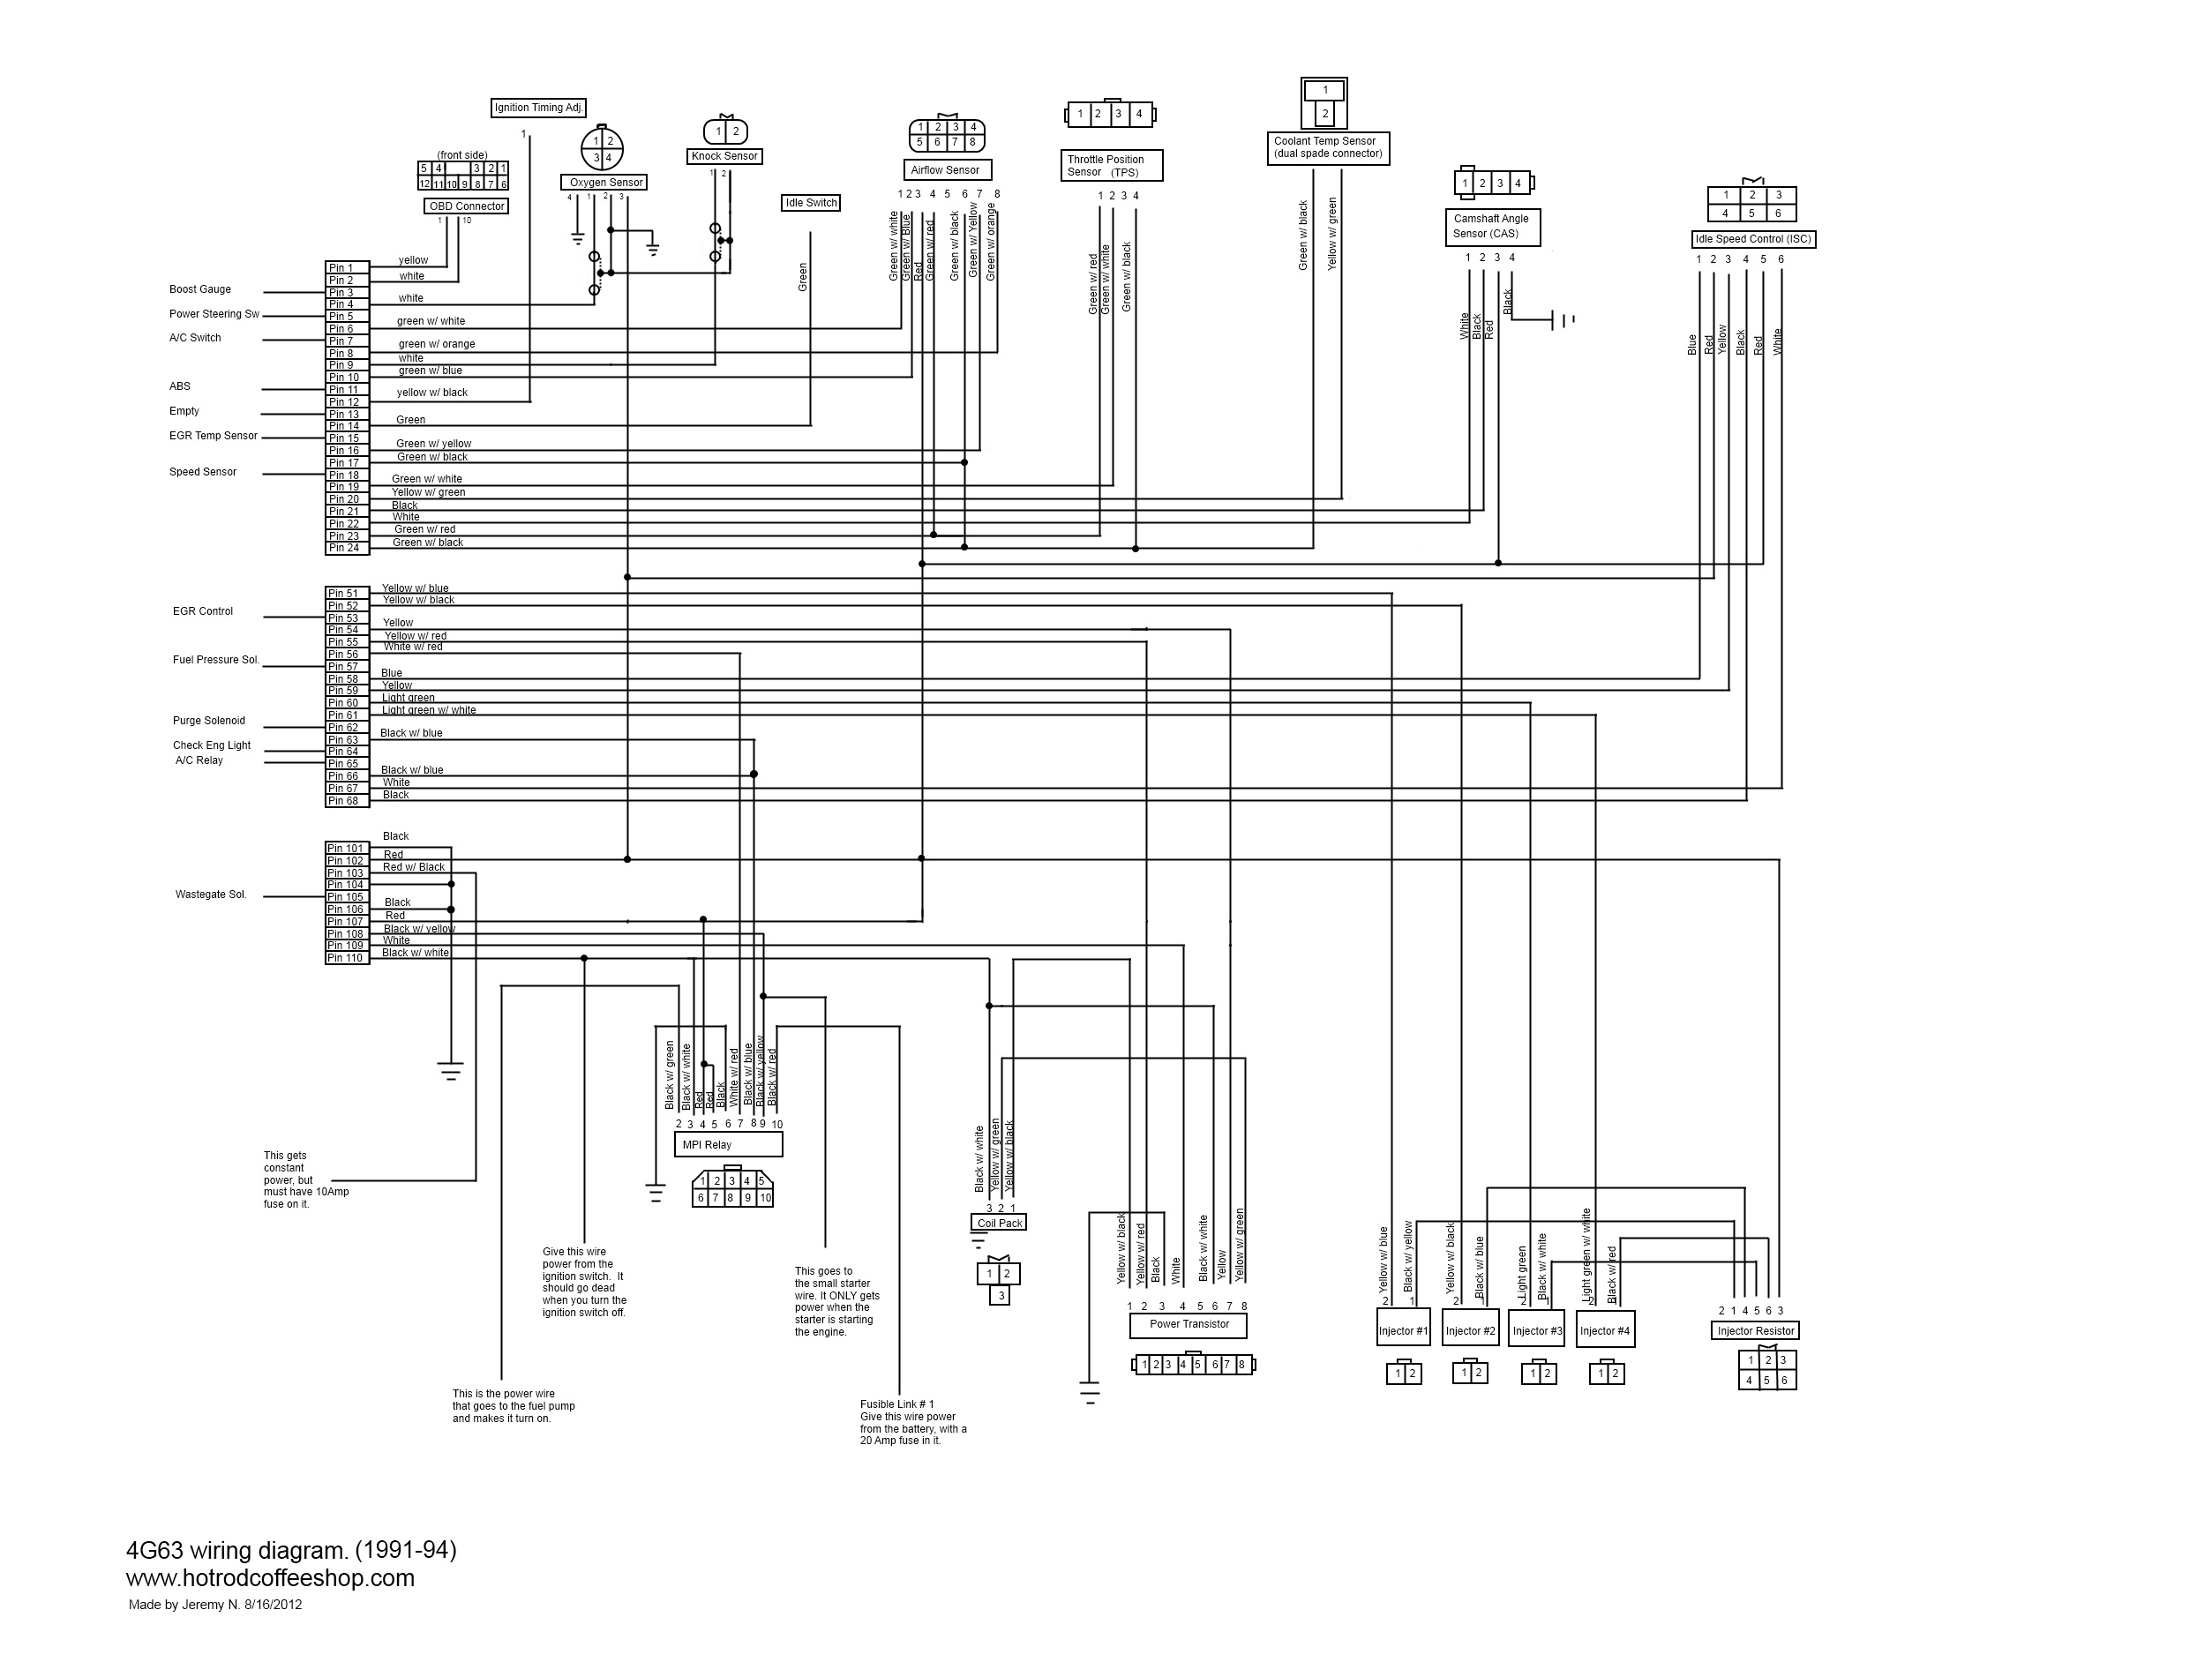 4g63ecudiagram_1 4g63 wiring diagrams schematics for engine swaps engine wiring diagram at webbmarketing.co